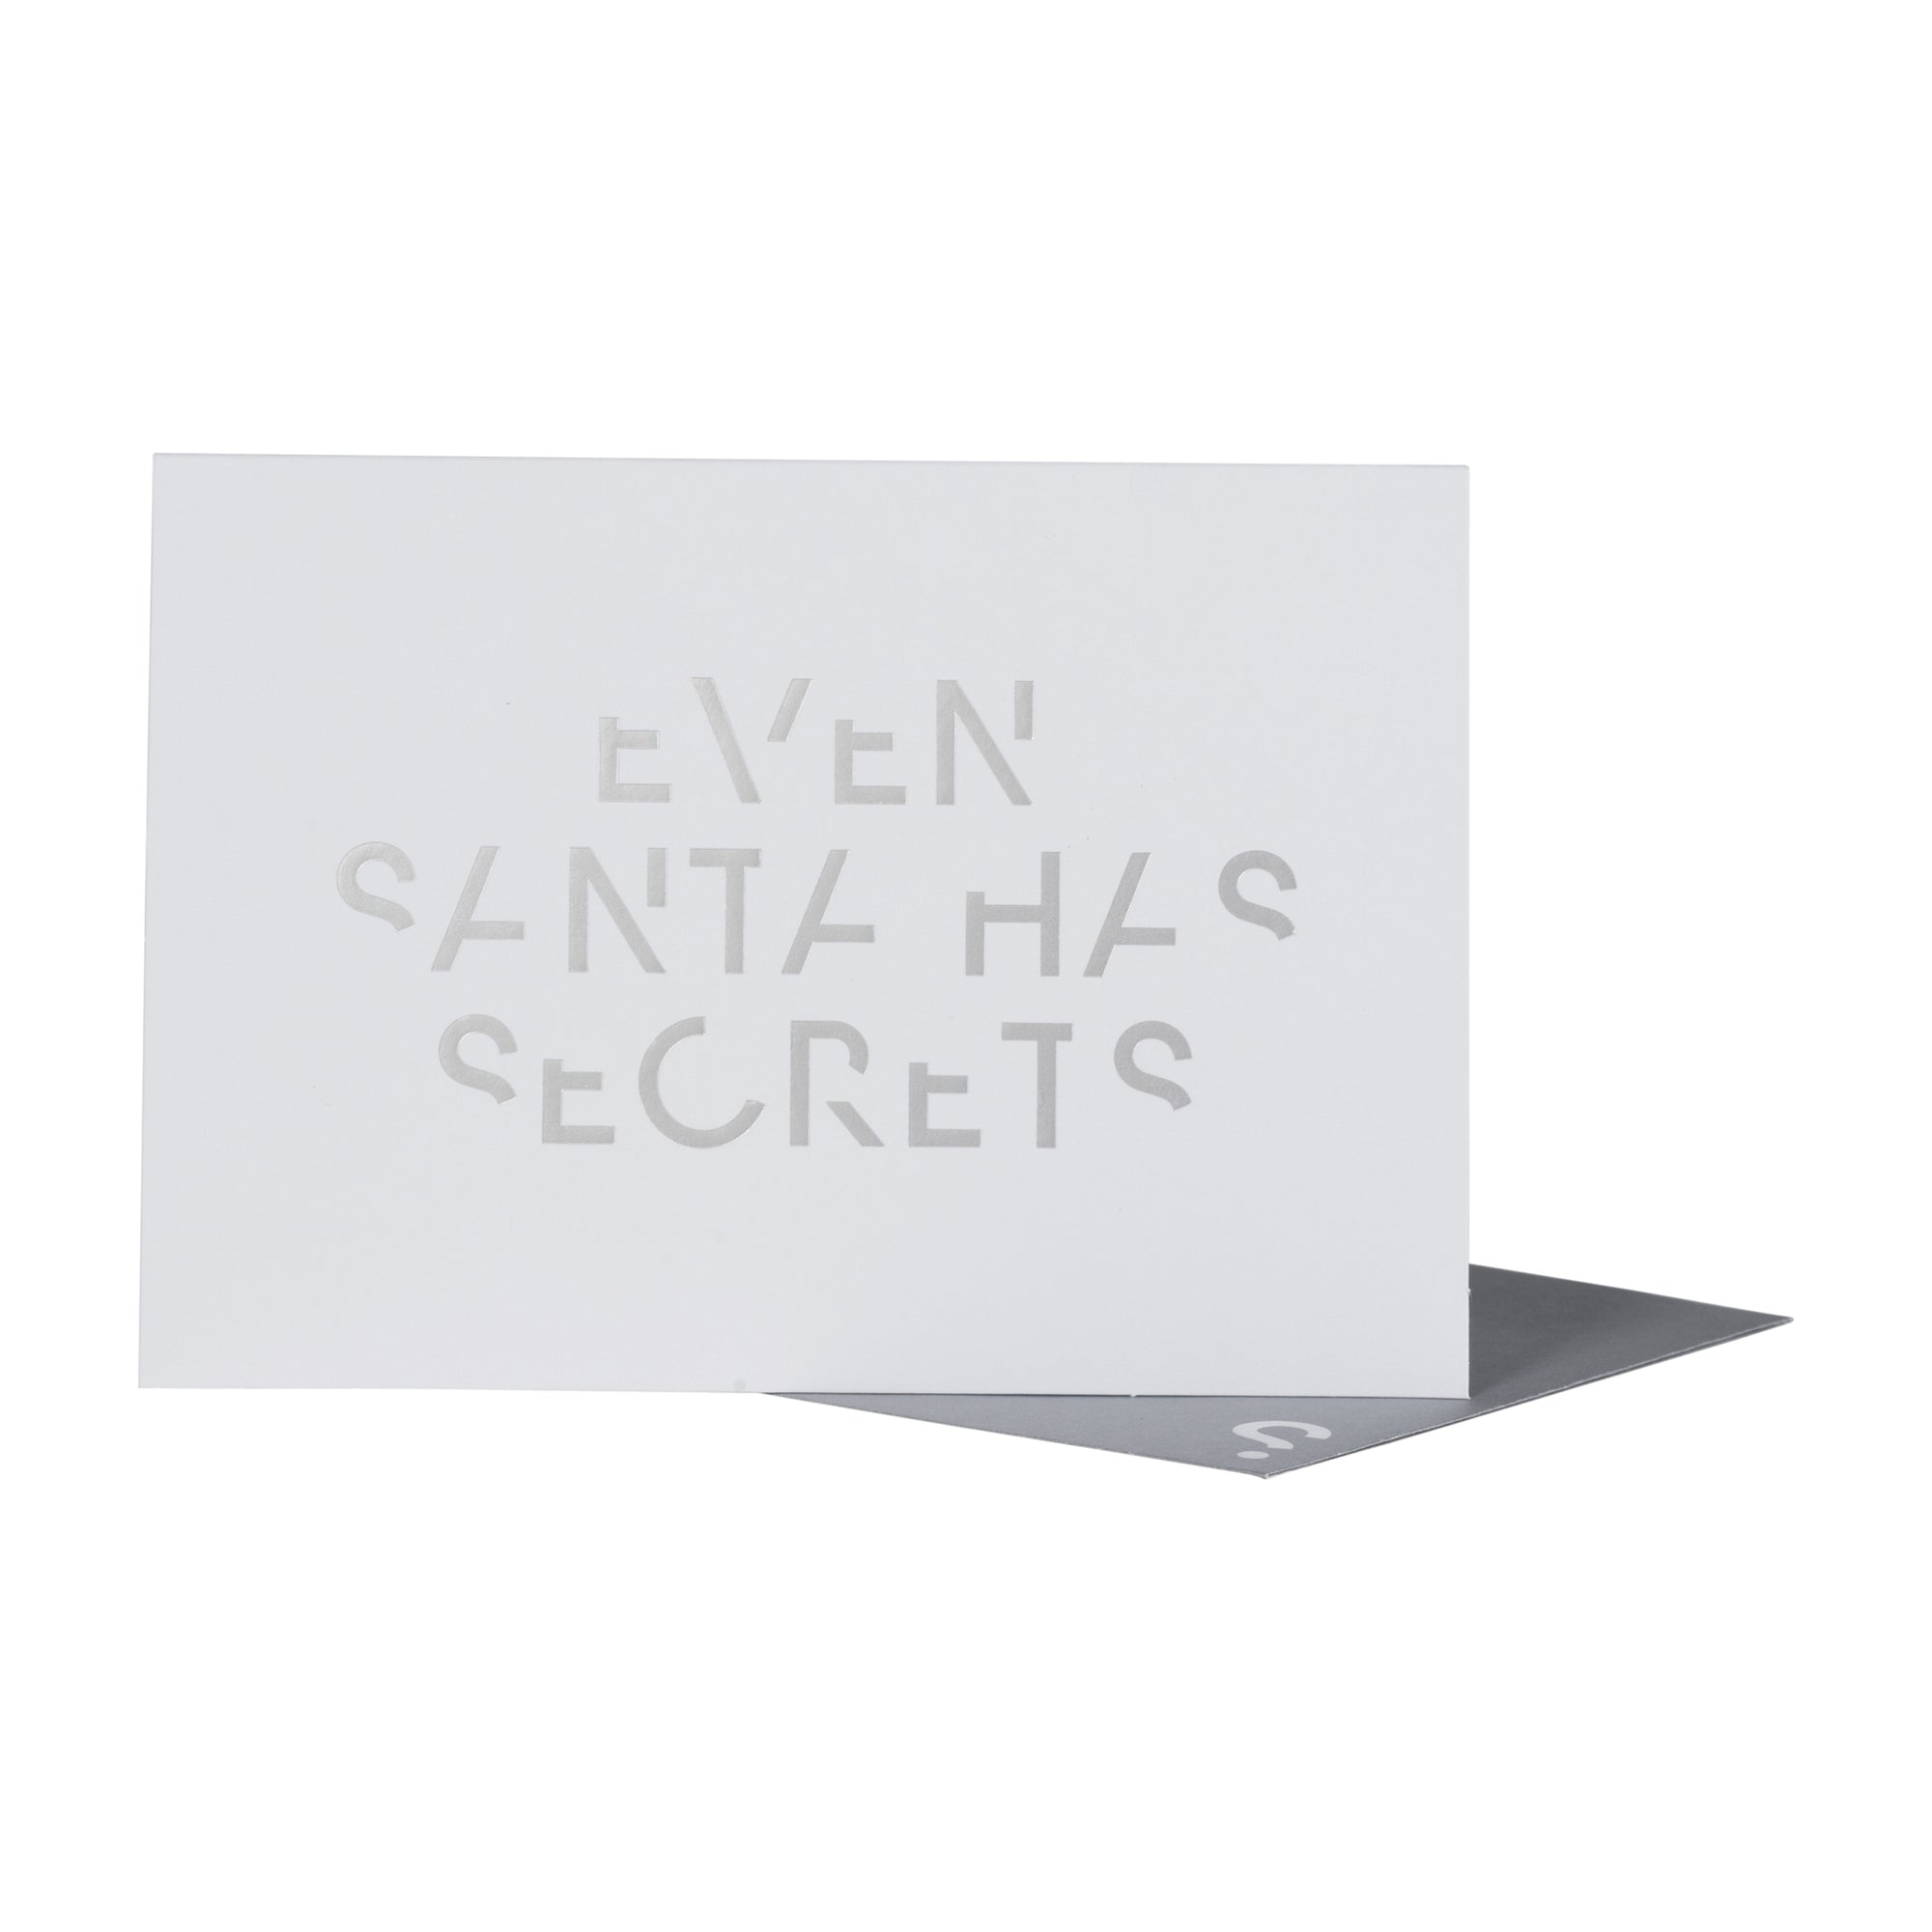 SPYSCAPE Santa Secrets Greeting card